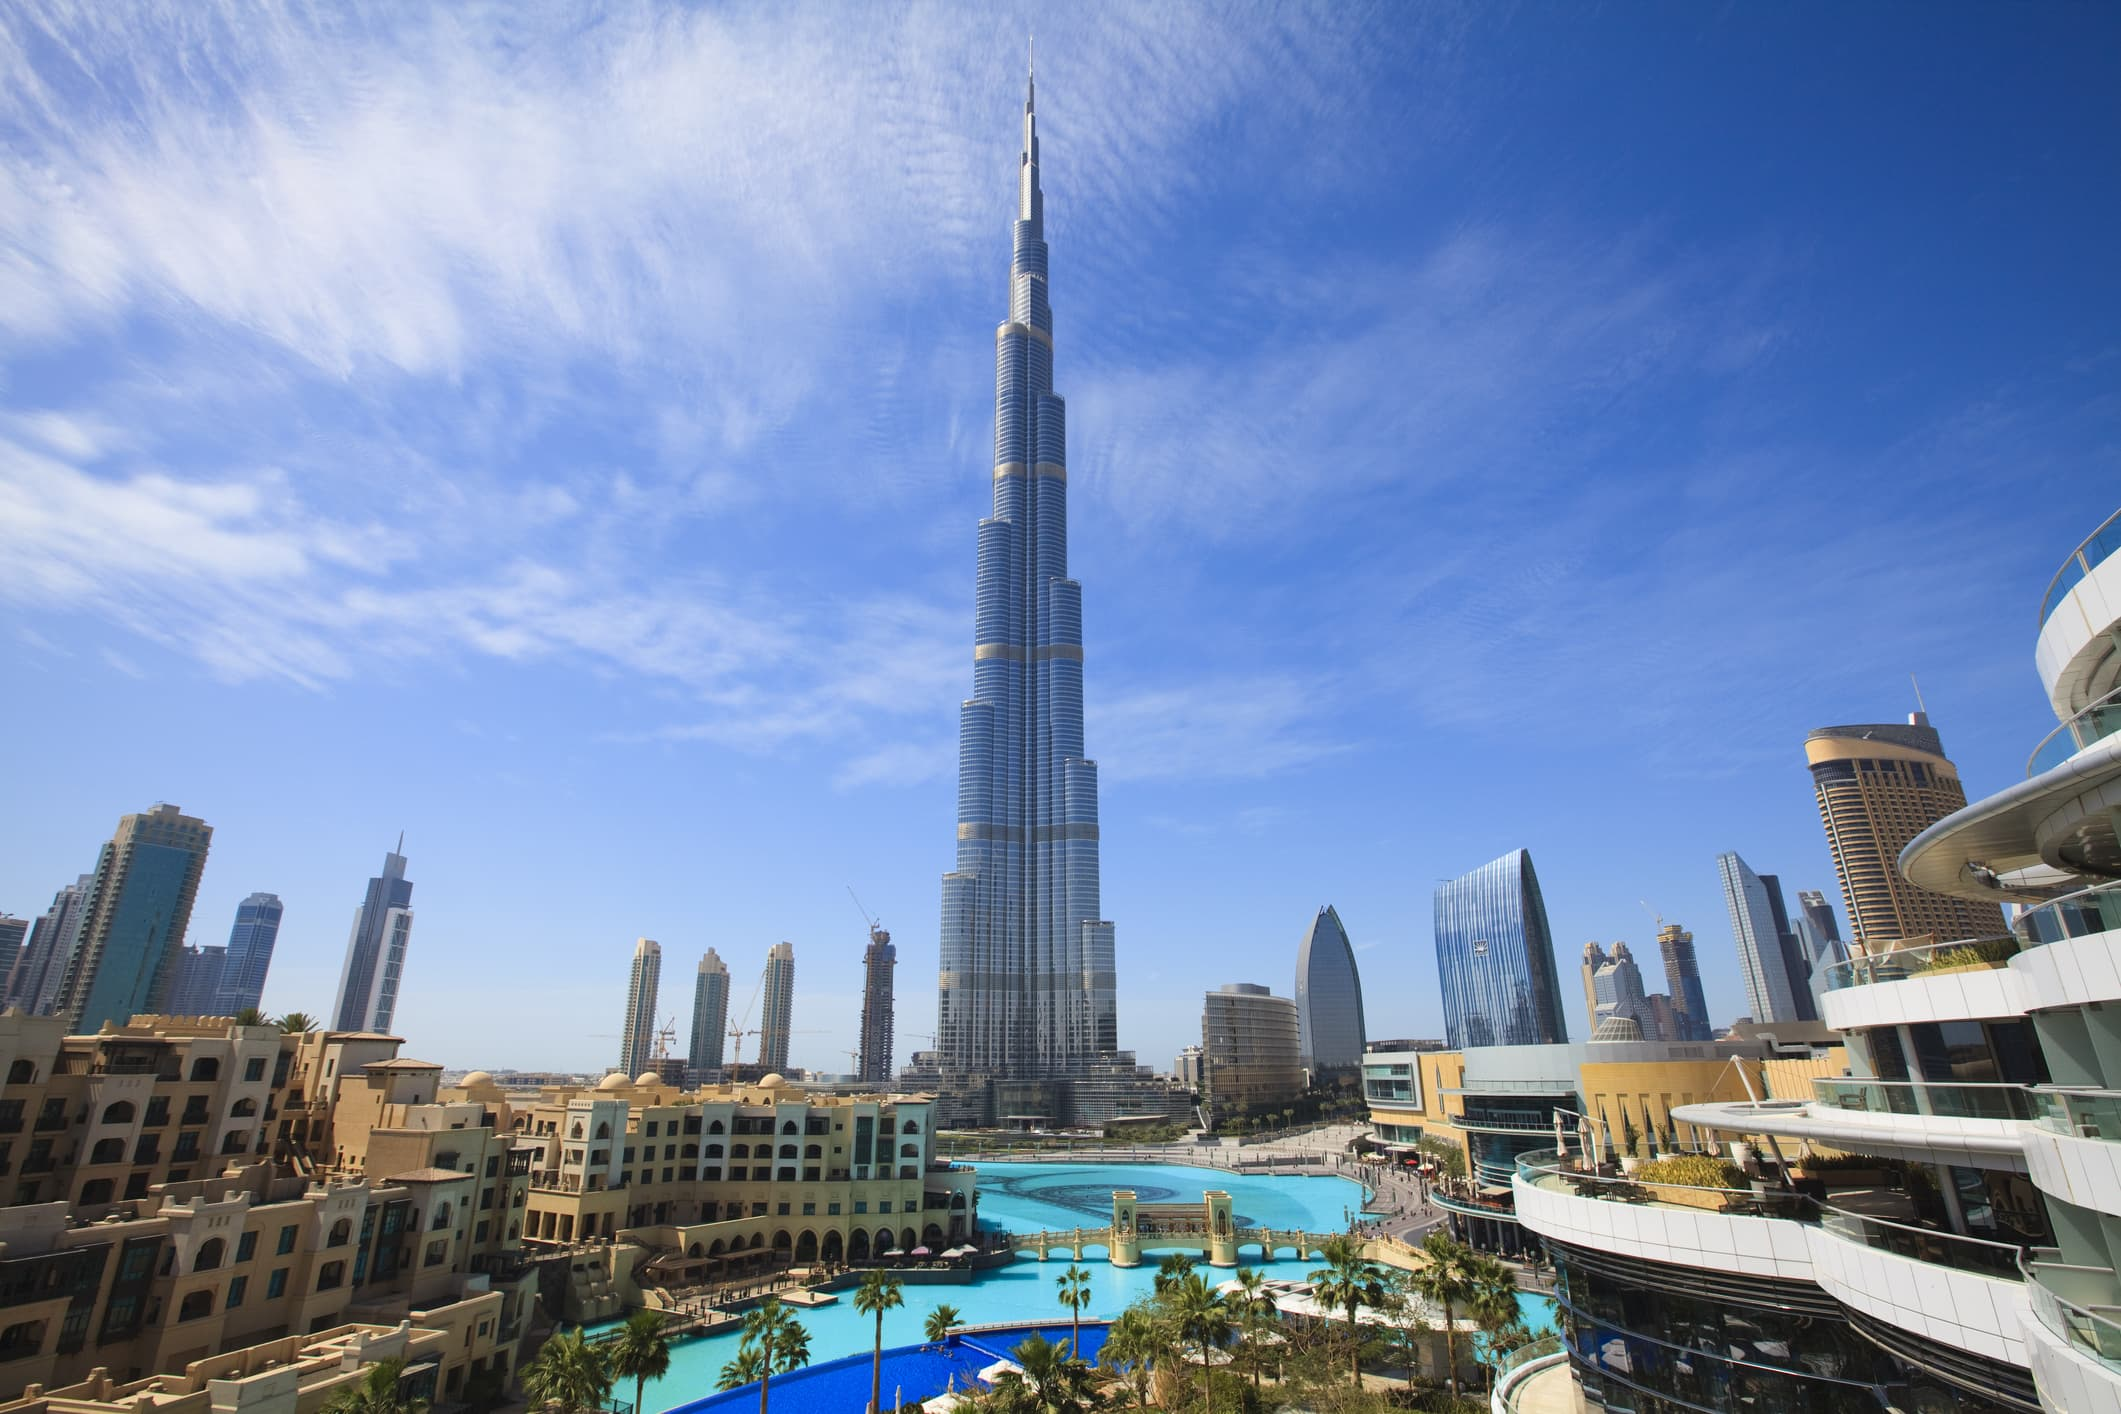 UAE could stay on the UK's travel 'red list' indefinitely, and mixed messages are stoking confusion